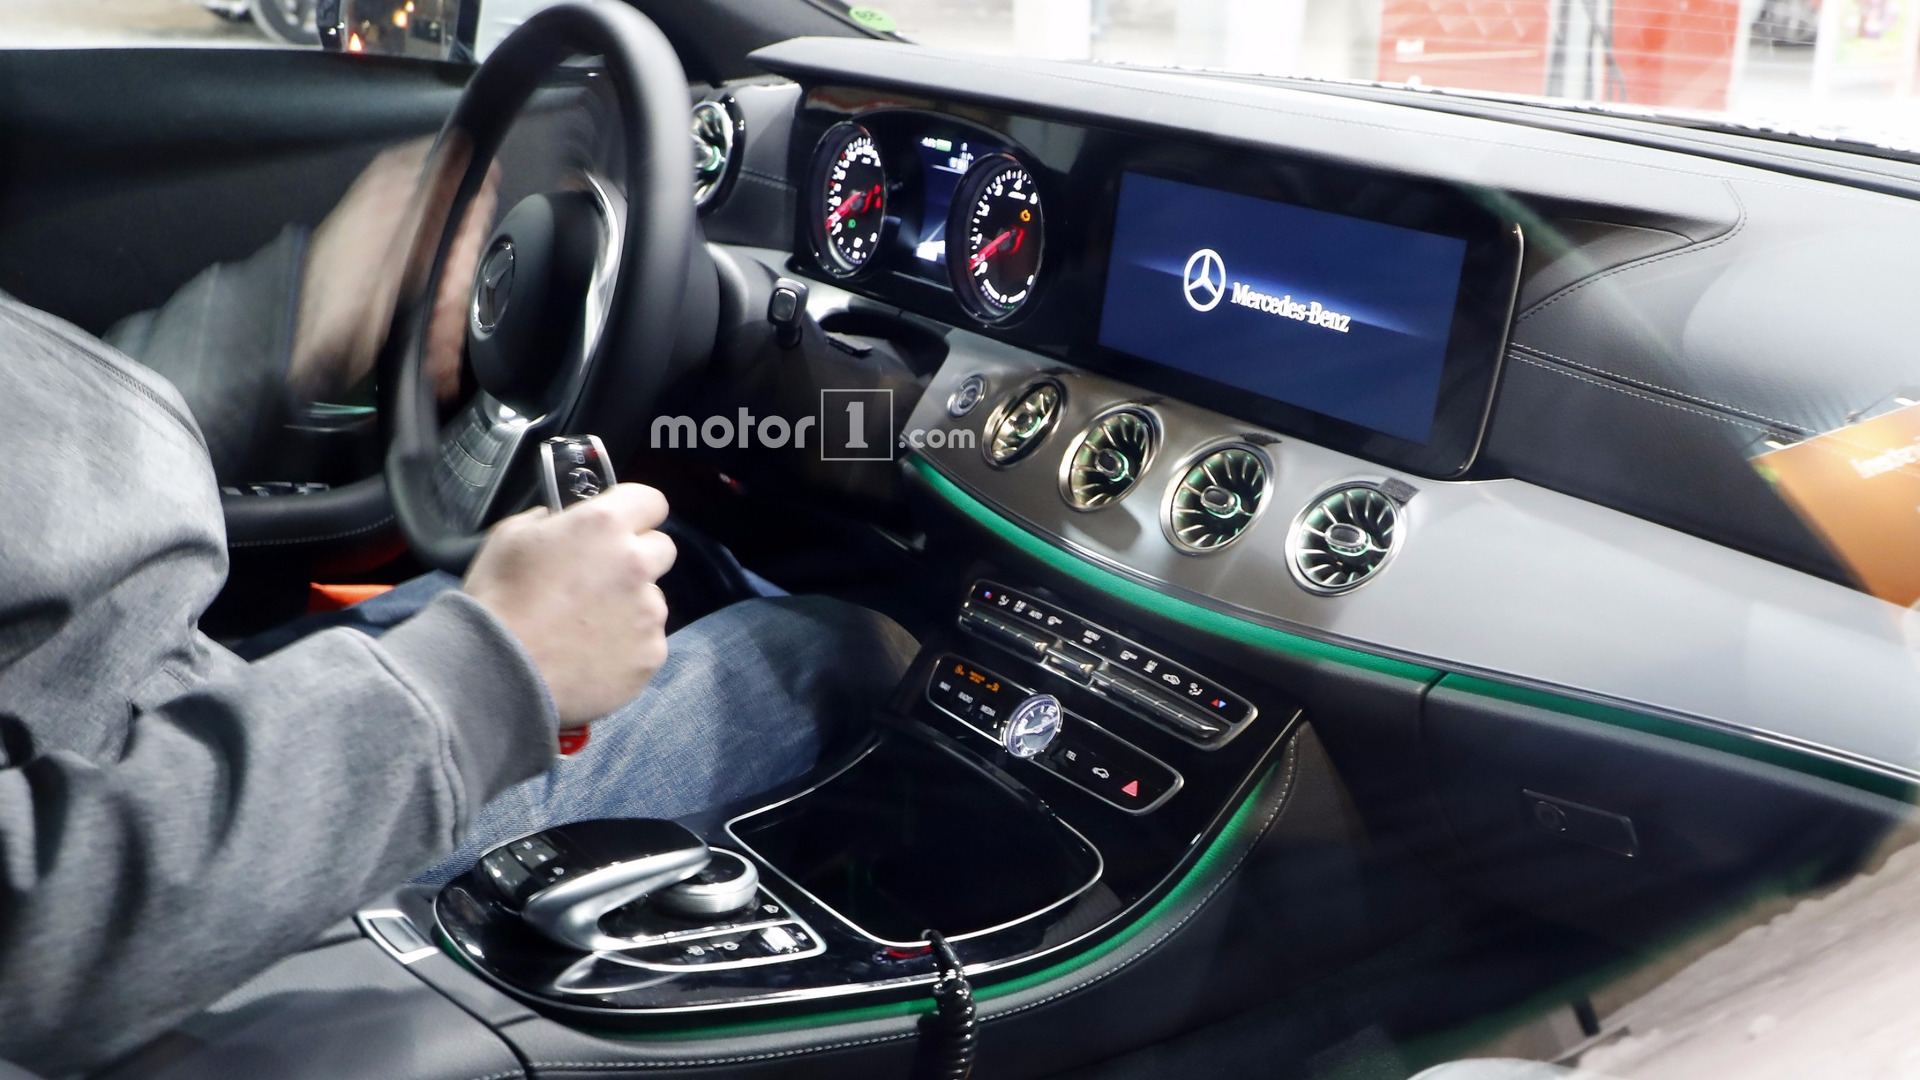 gas cars with 2018 Mercedes Cls Interior Spy on 2018 Mercedes Cls Interior Spy additionally Index further Istanbul  Turkey together with Detail 2018 Toyota Camry Xle automatic New 16663261 moreover LEGO 7993 Benzinestation.